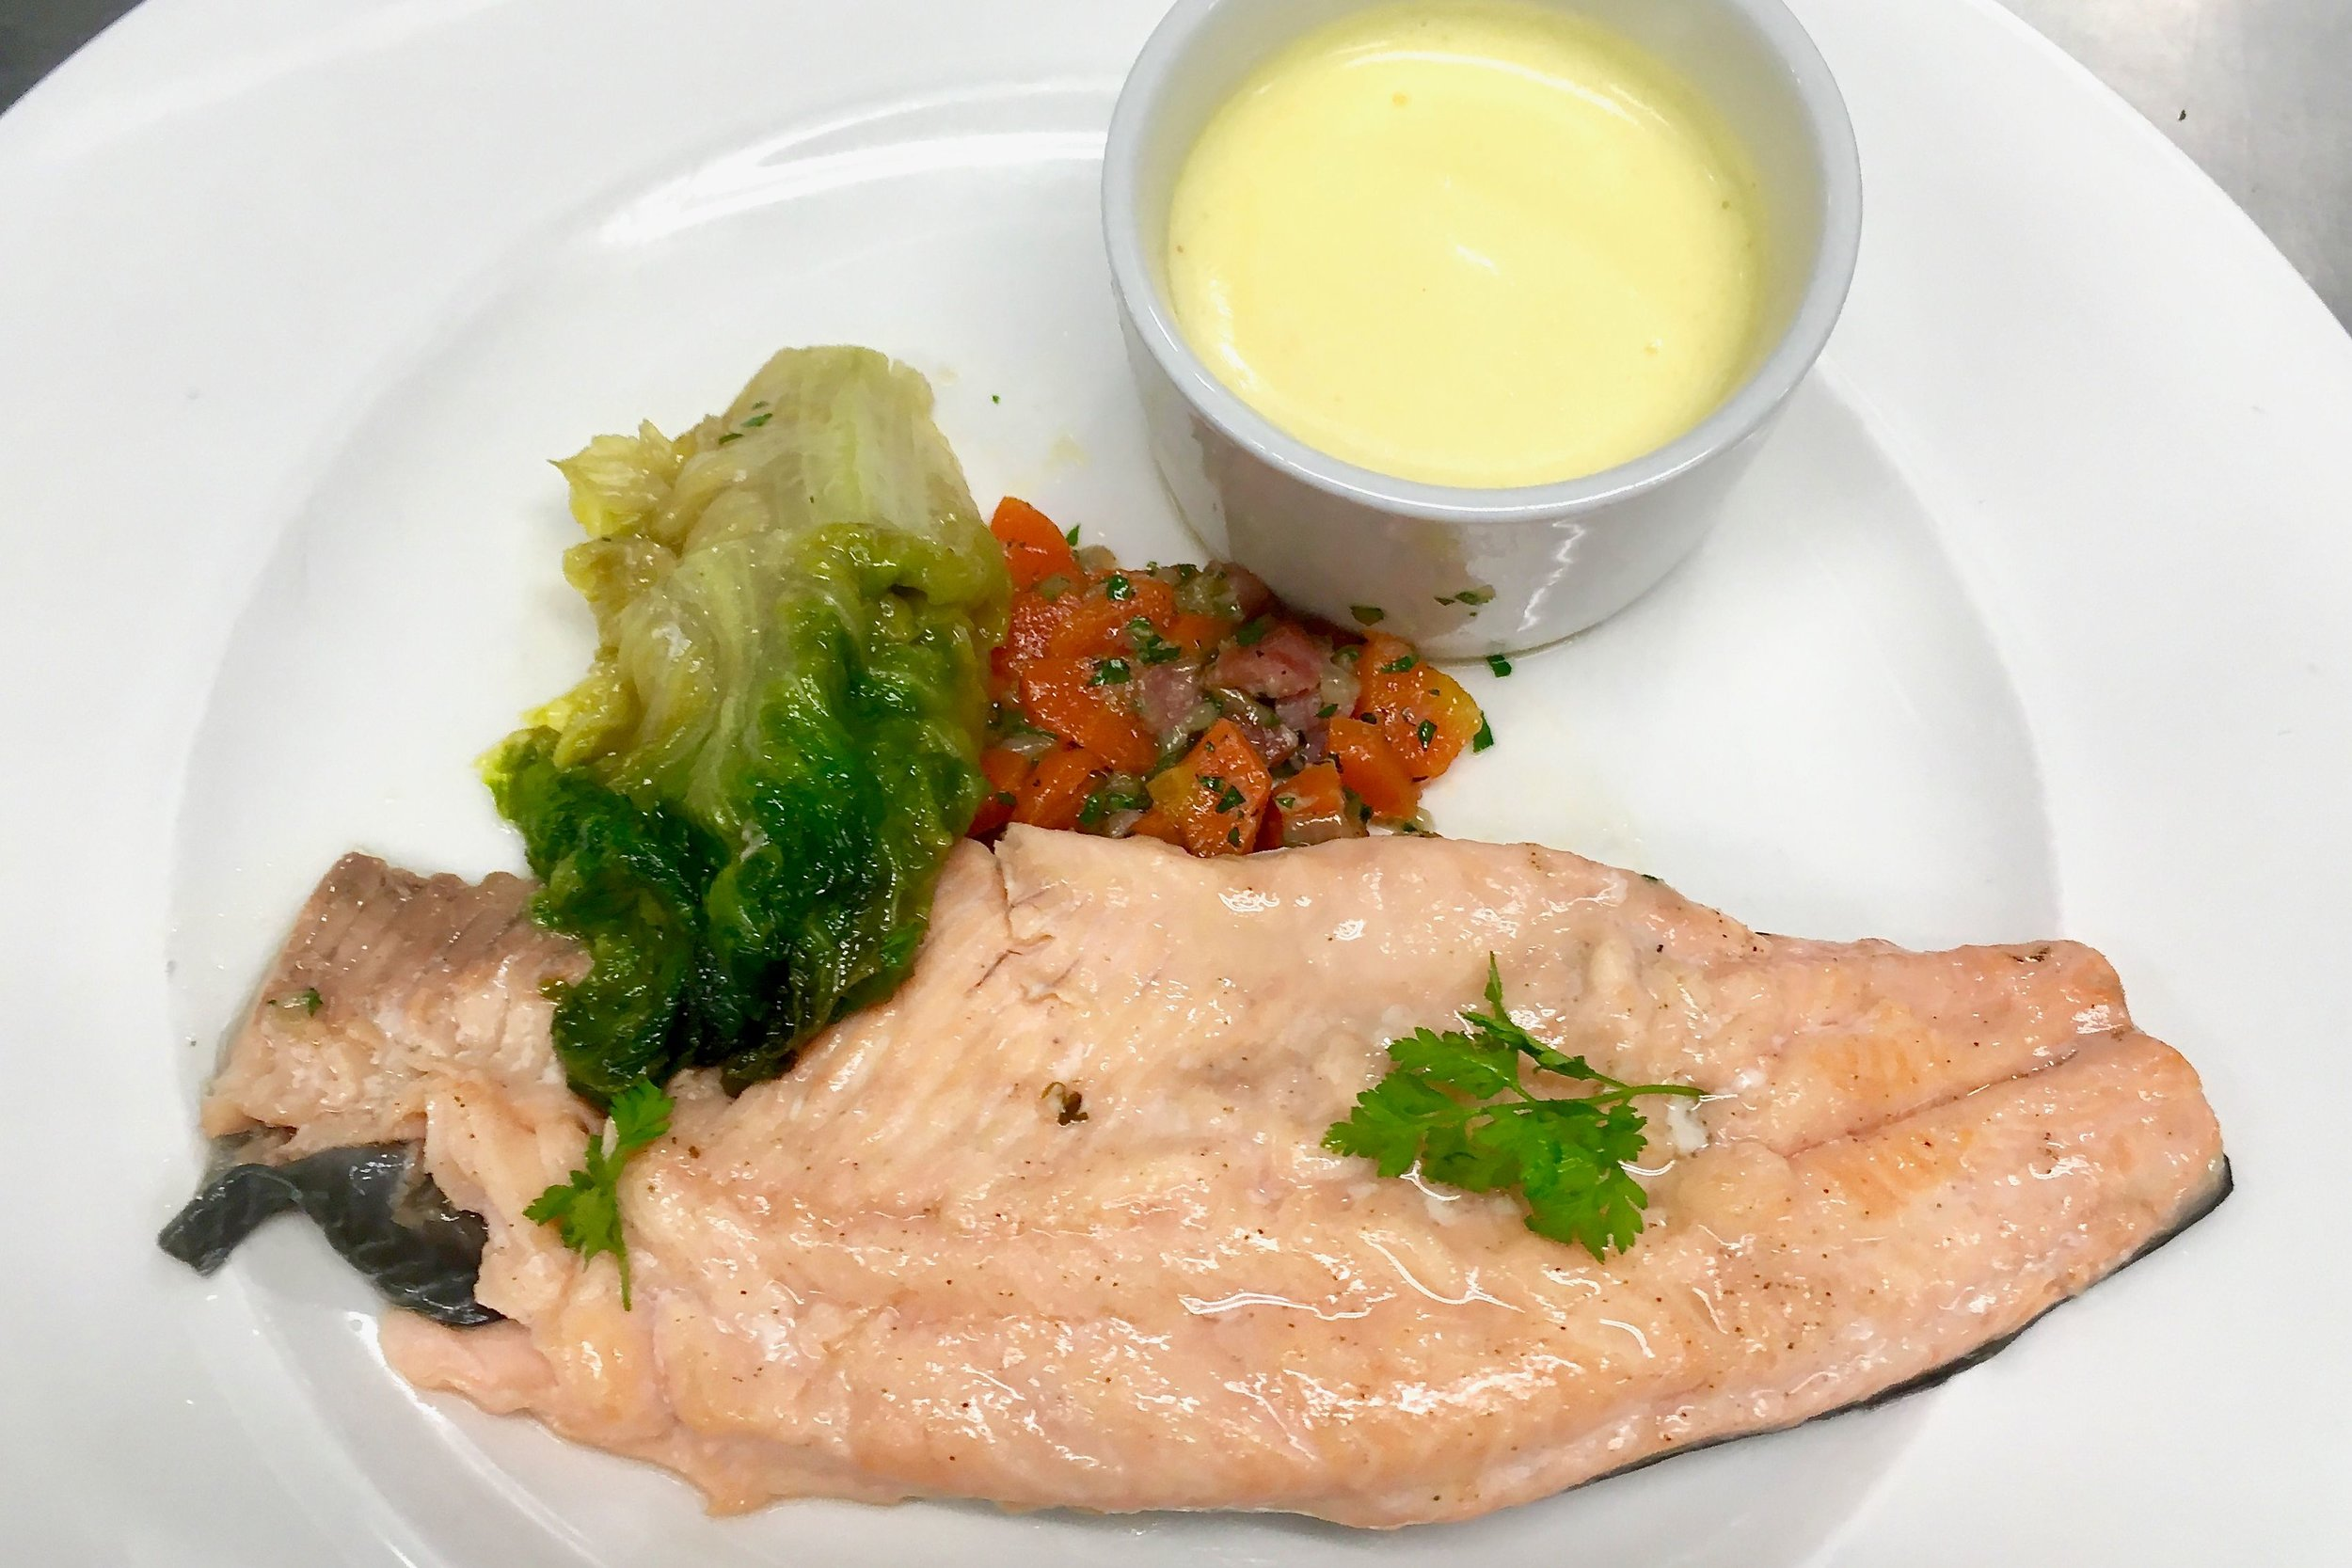 My trout after tasting